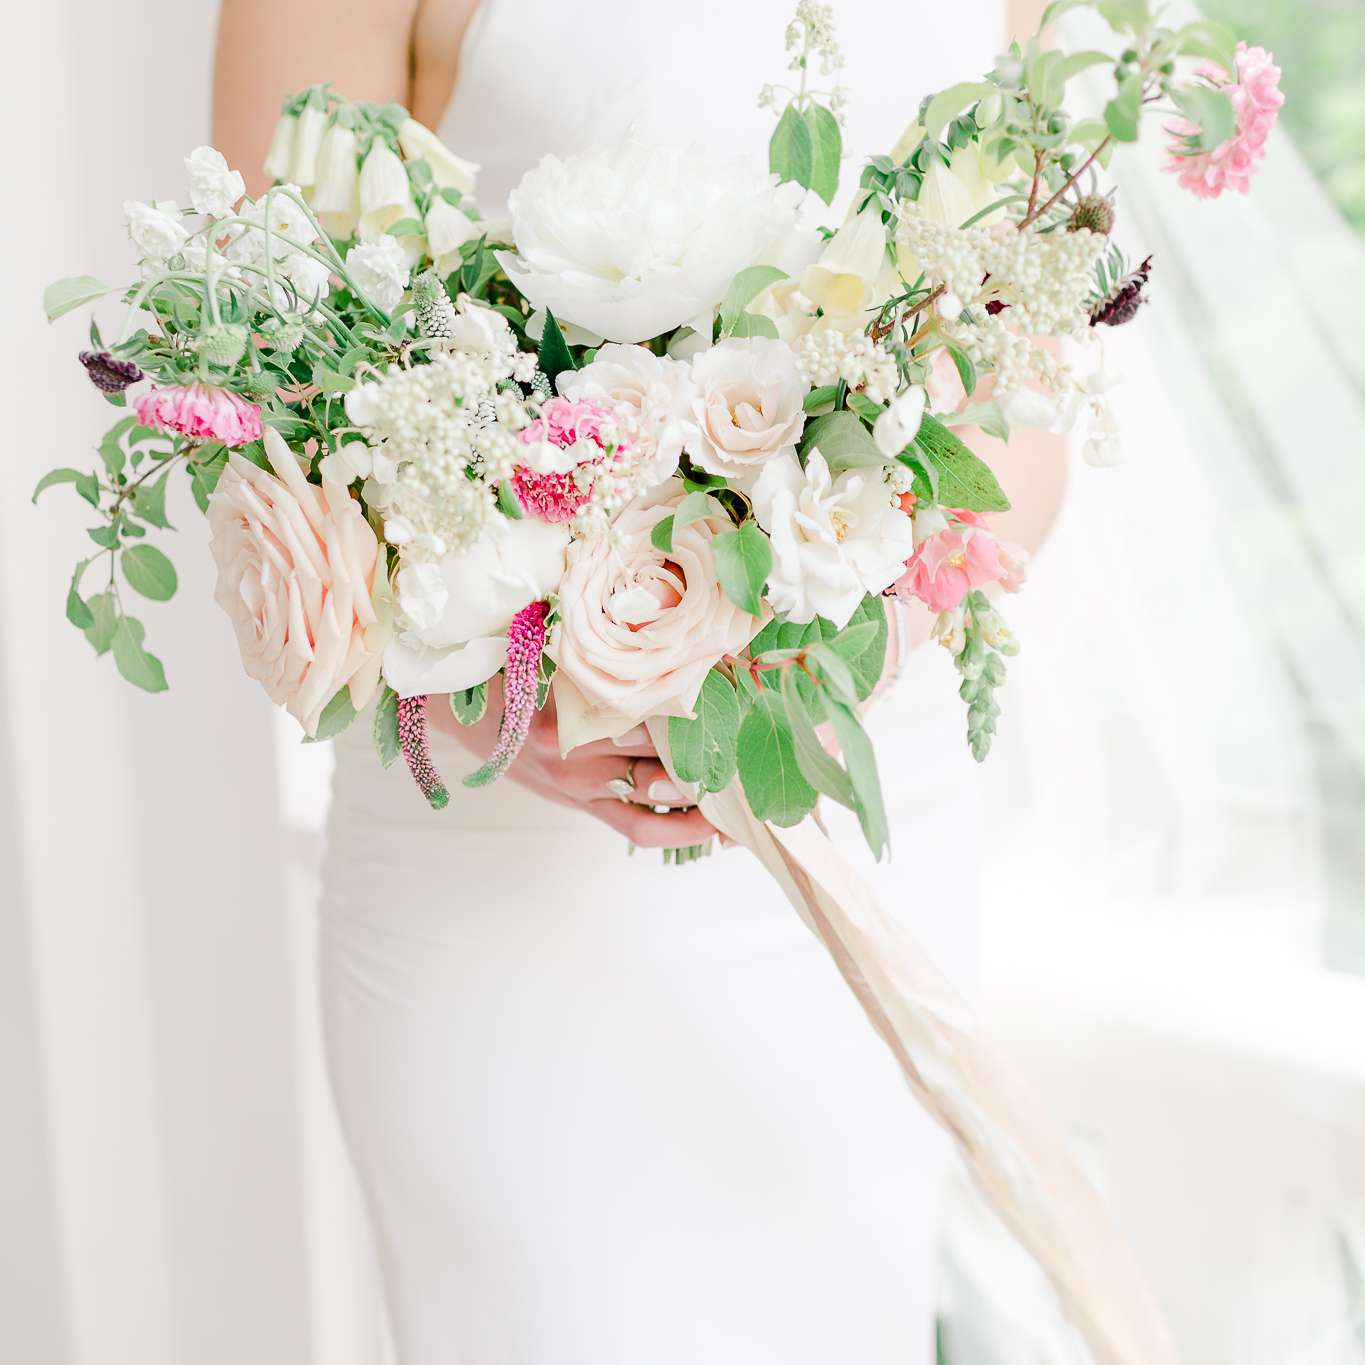 Bride holding pink and white bouquet of peonies, roses, foxgloves, hydrangea, snapdragon, veronica, and scabiosa